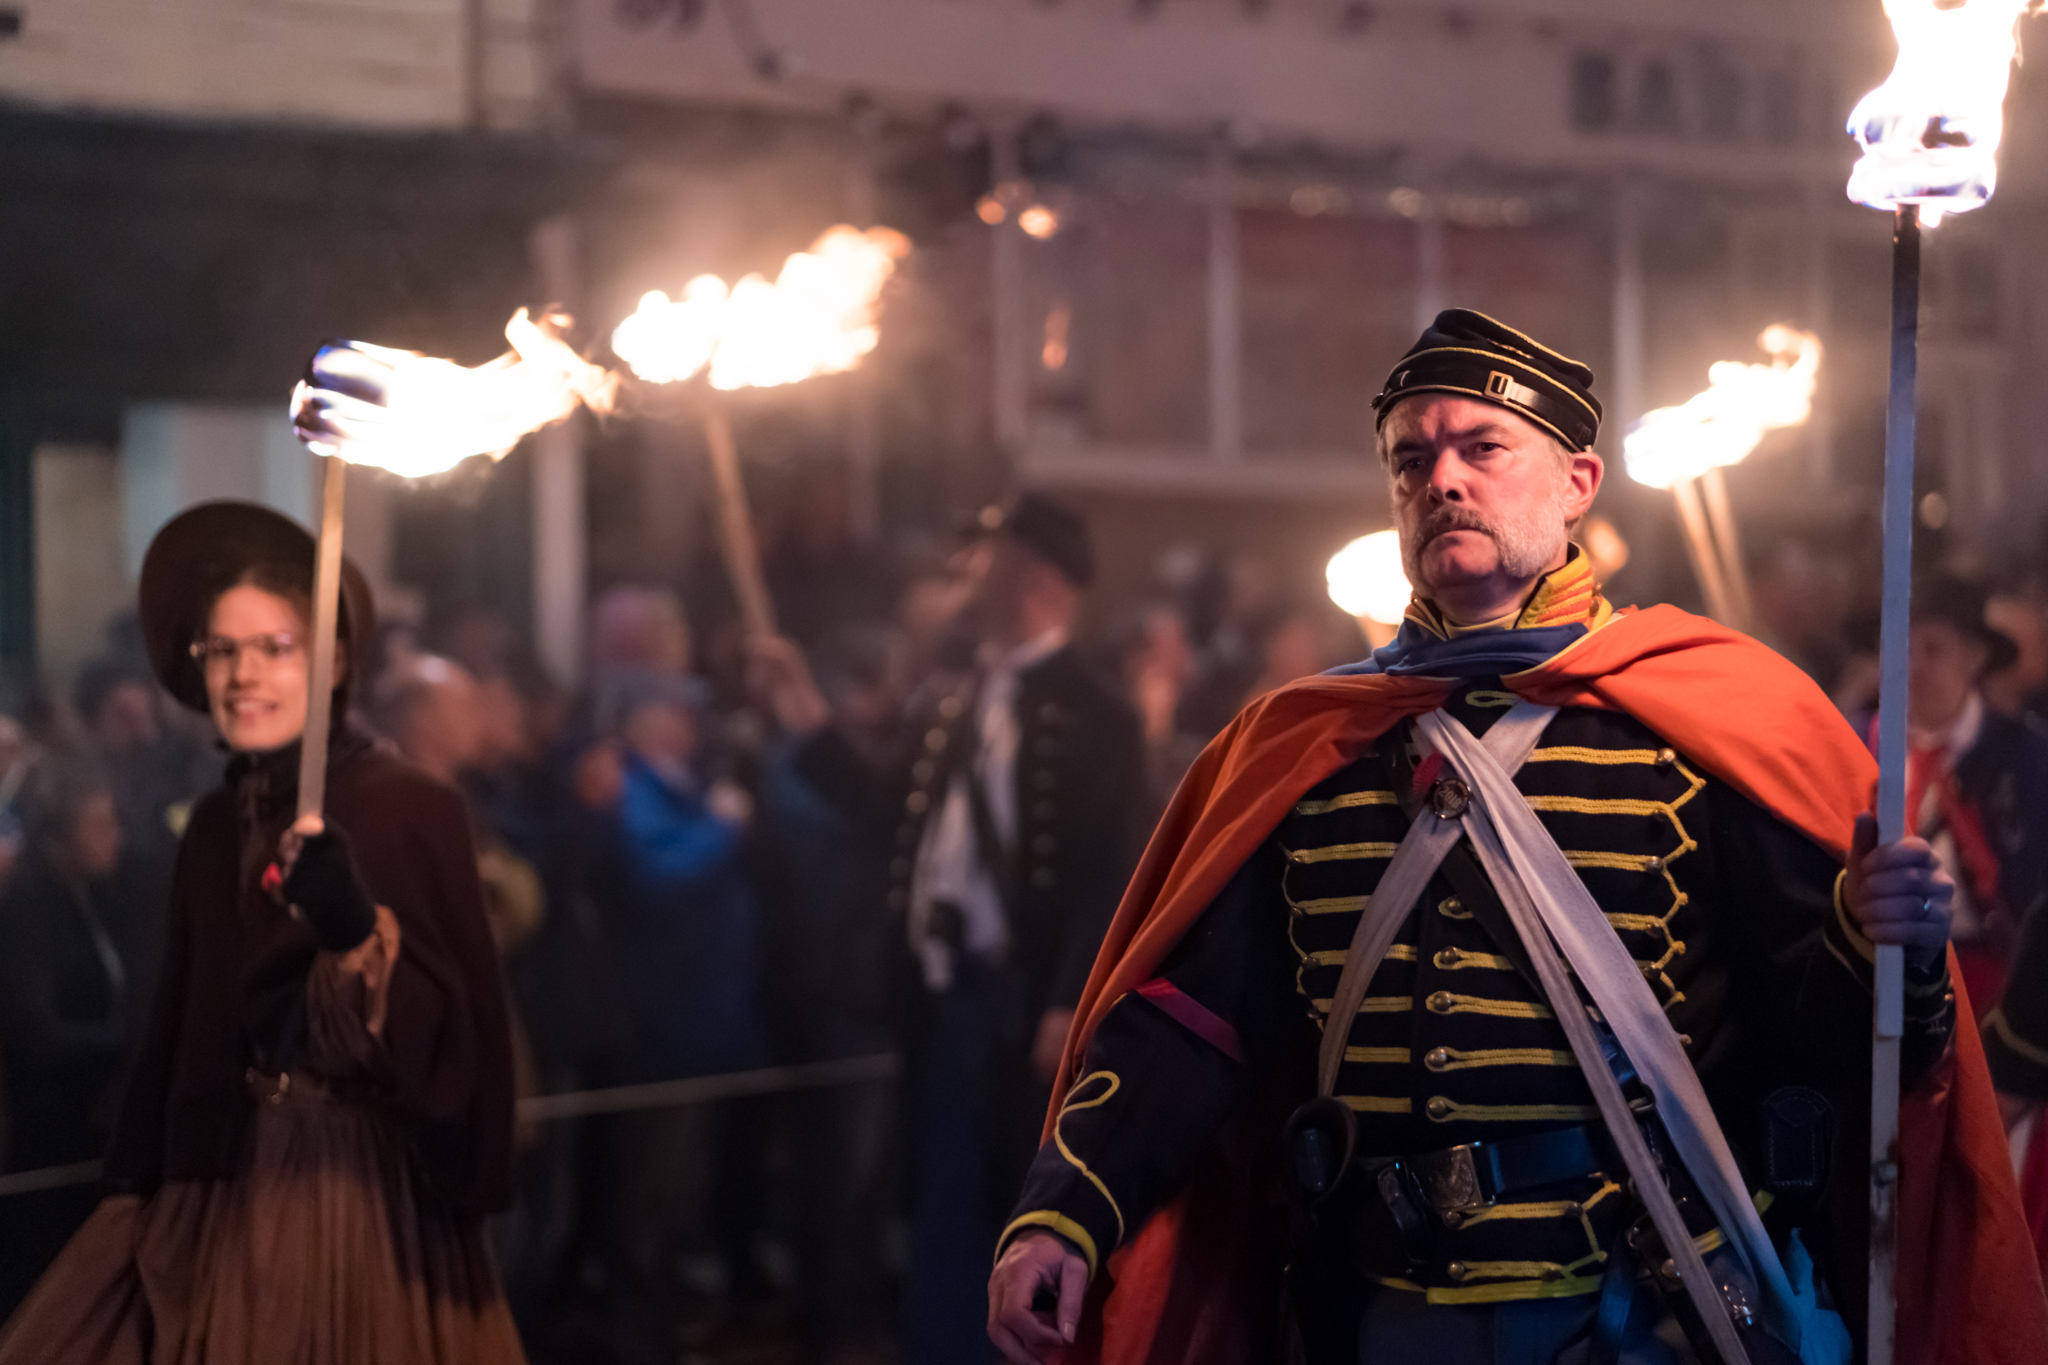 Carrying burning torches through the narrow streets